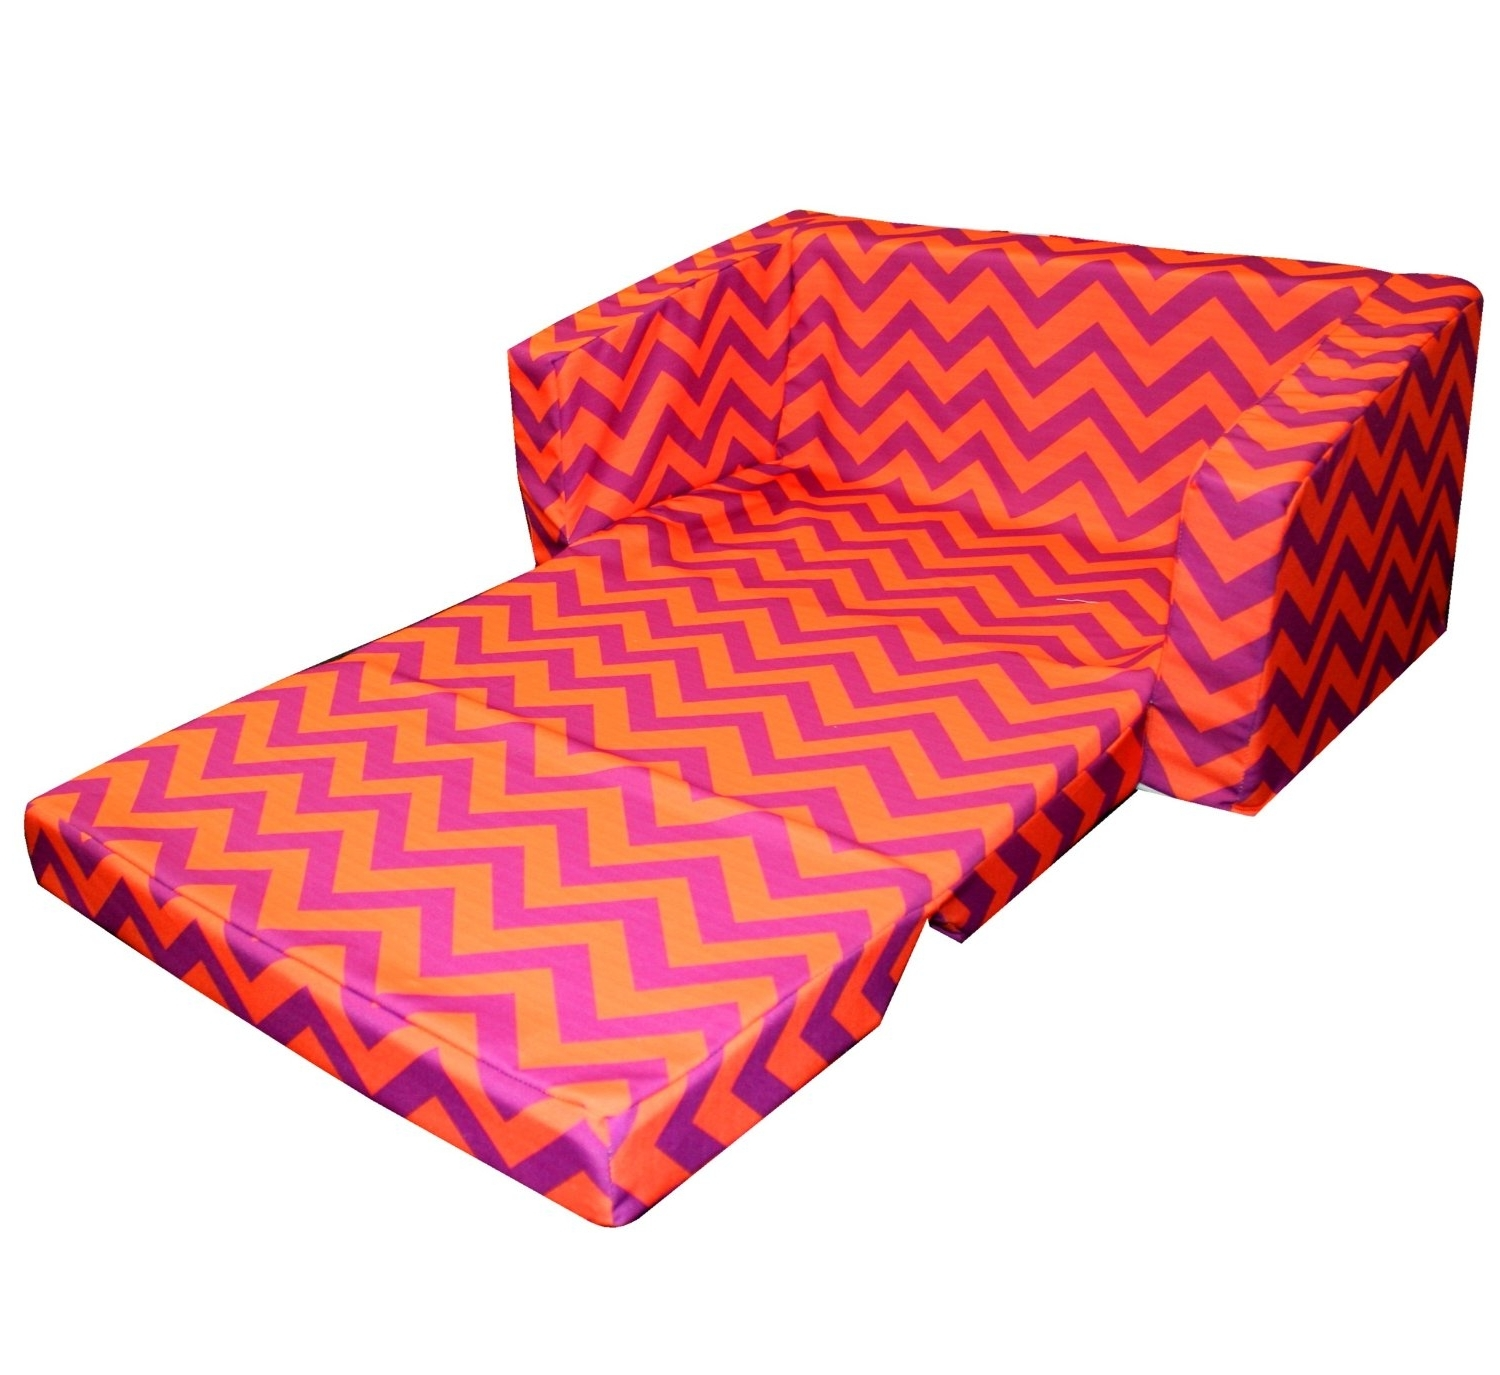 Kids' Fold Out Sleeper Sofas Pertaining To Current Flip Out Sofas (View 8 of 20)